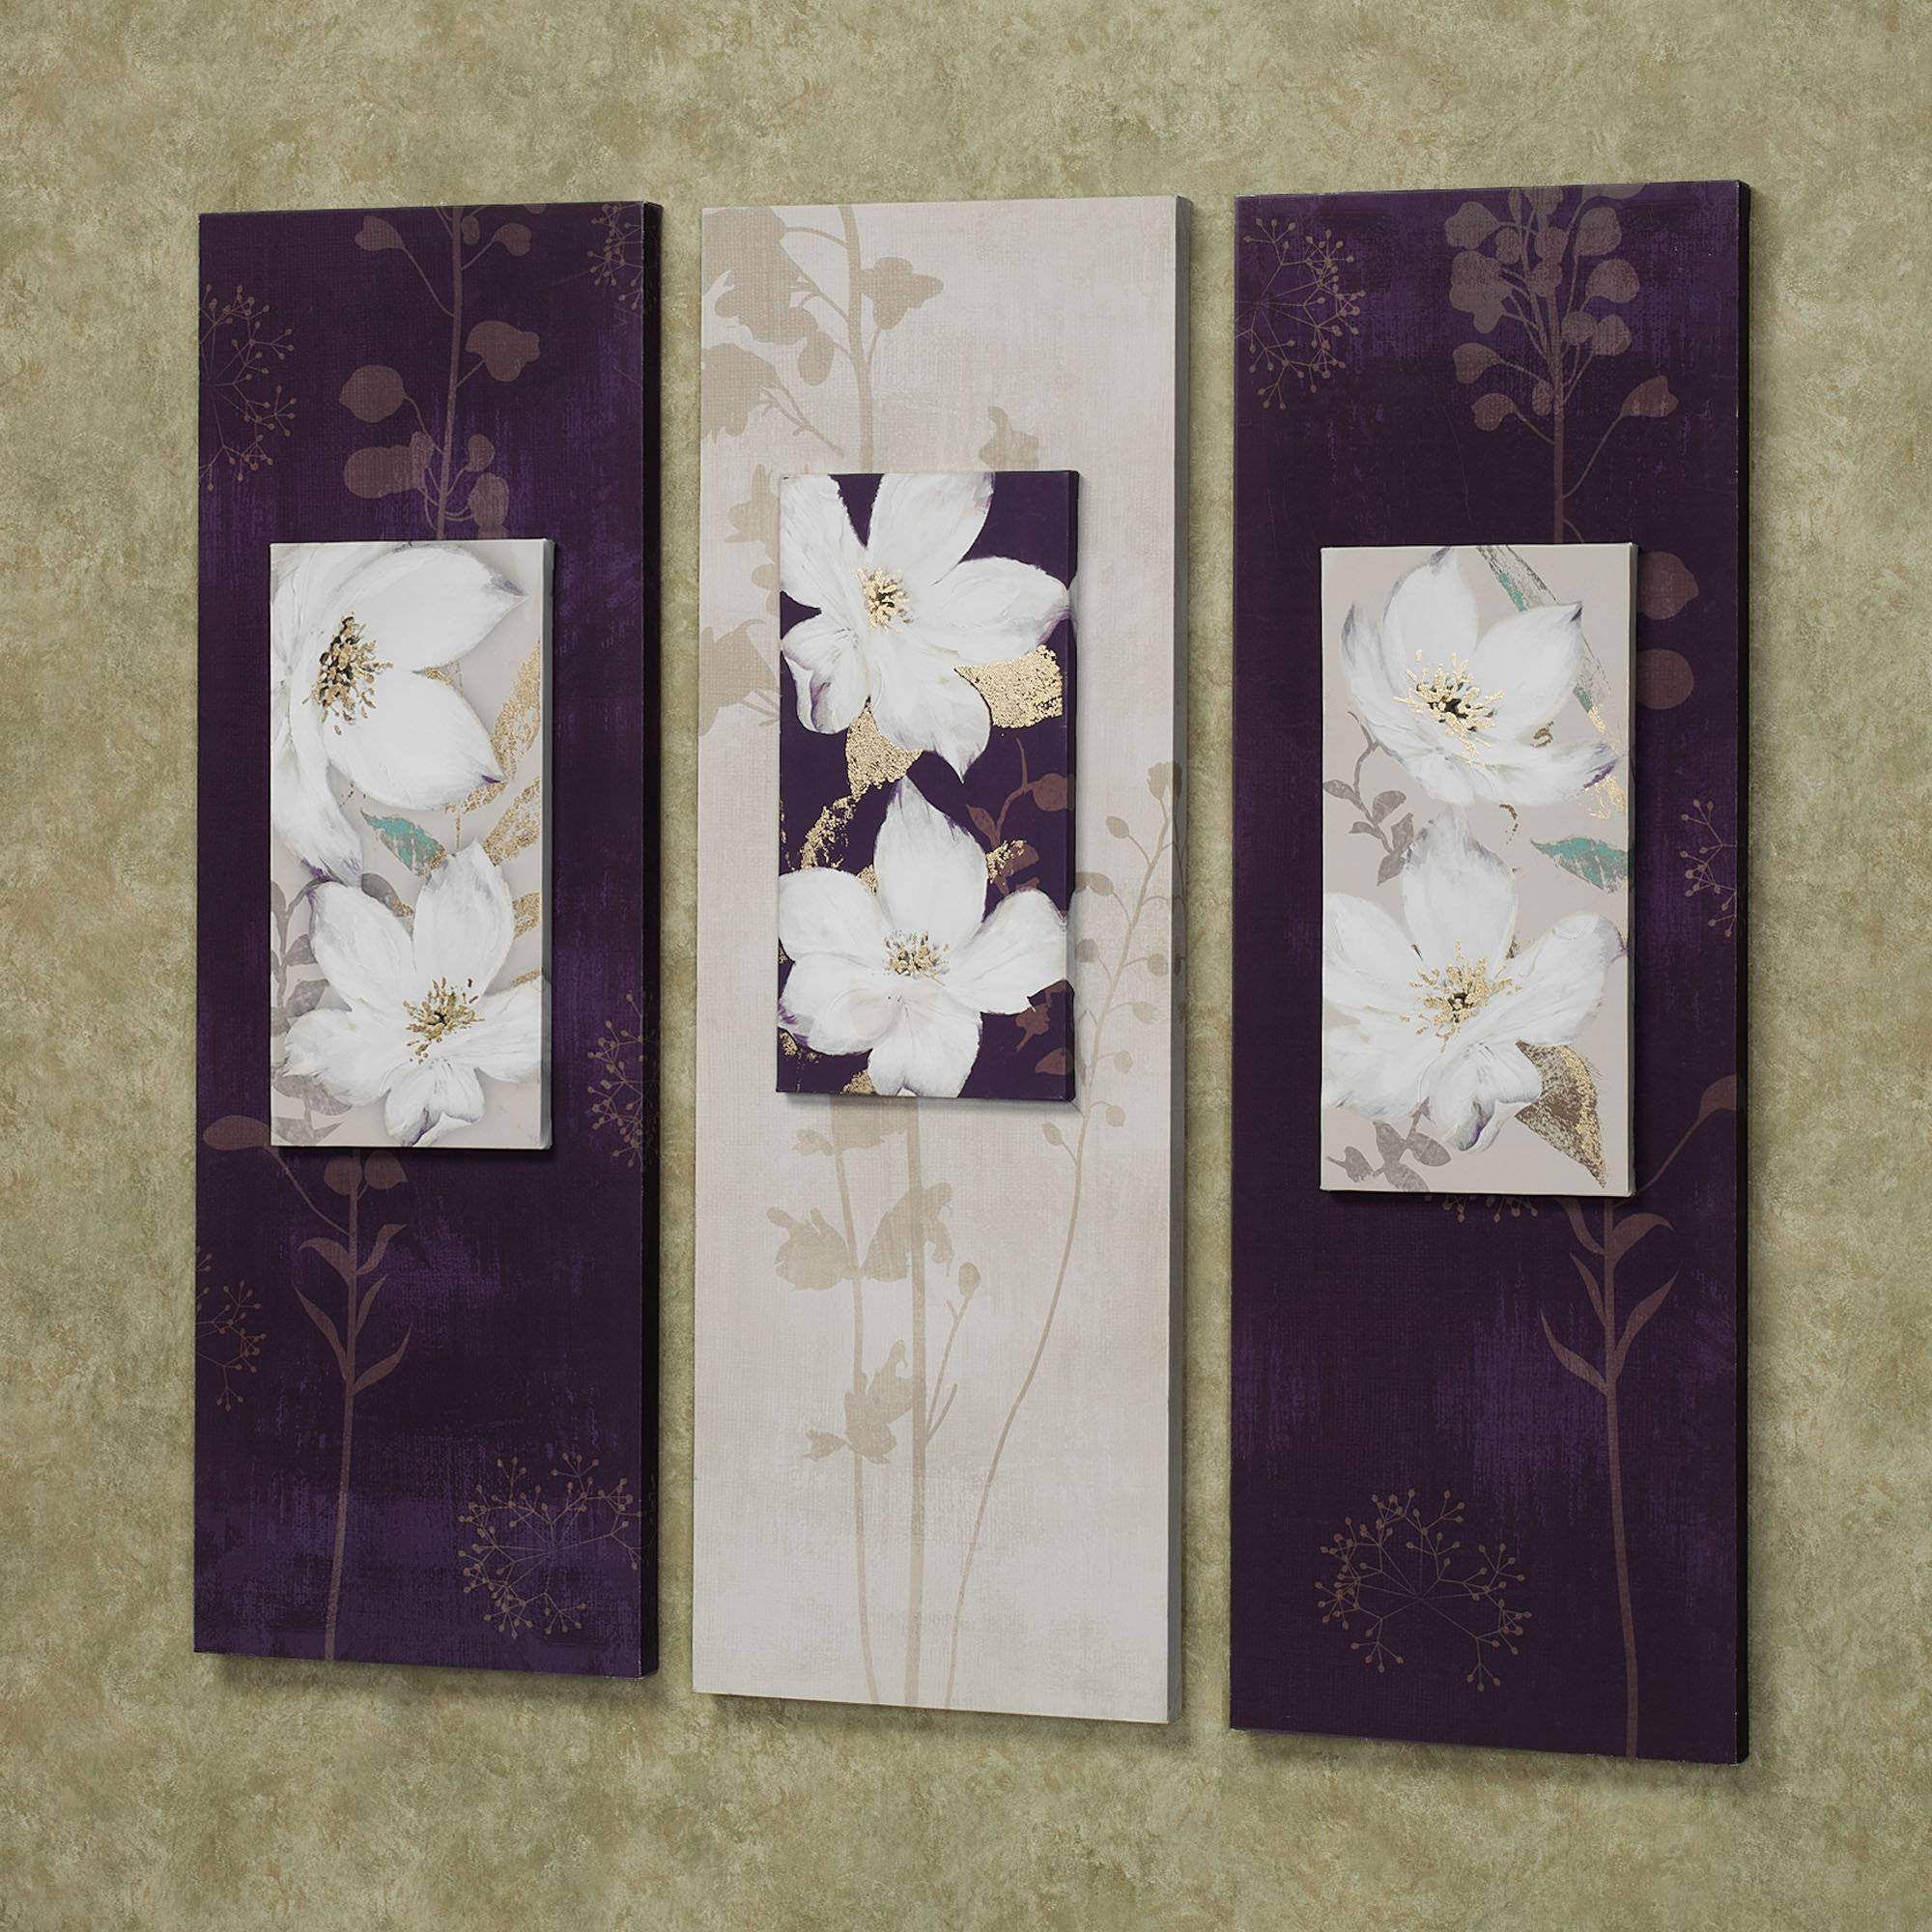 Outstanding Metal Wall Art Set Of 2 Garden Dance Floral Canvas For Newest Botanical Metal Wall Art (View 16 of 25)